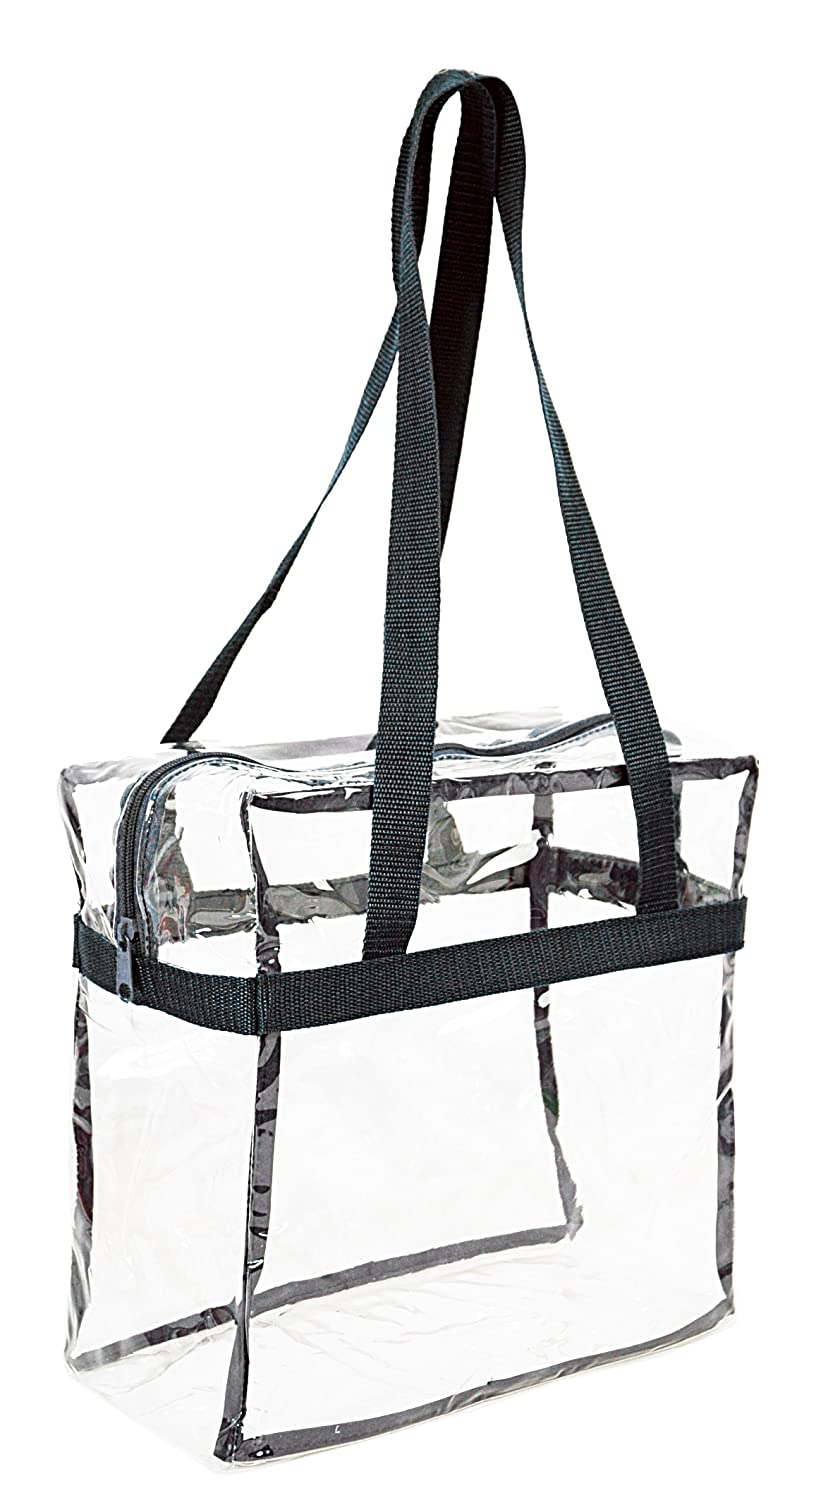 b1f32315906 Amazon.com  Clear 12 x 12 x 6 - NFL Stadium Approved Tote Bag with 35